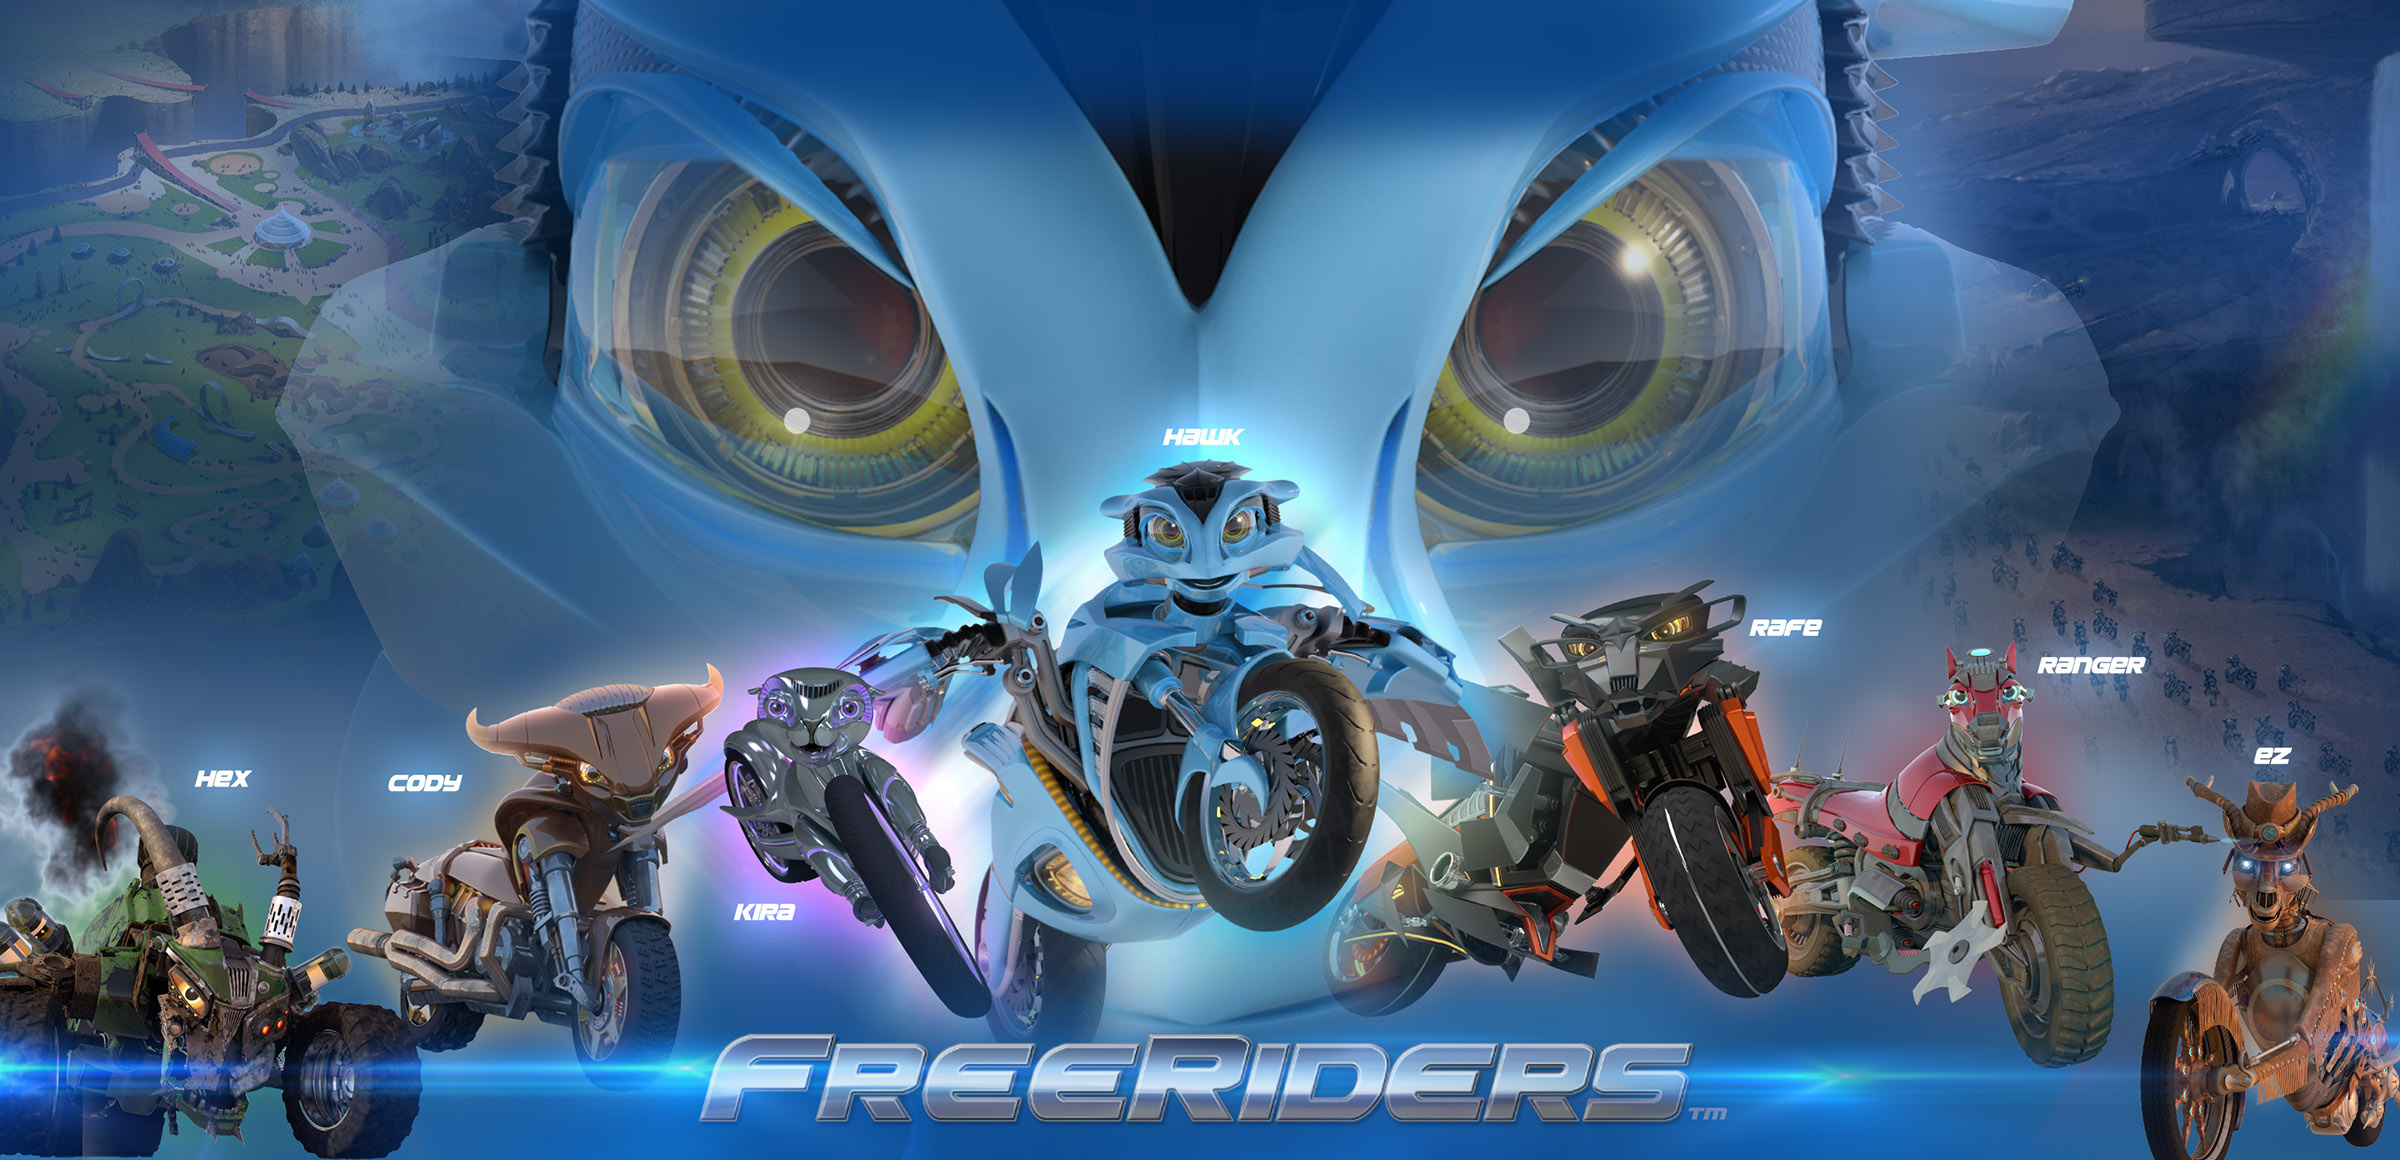 Freeriders motorcycle characters and motorcycle animation